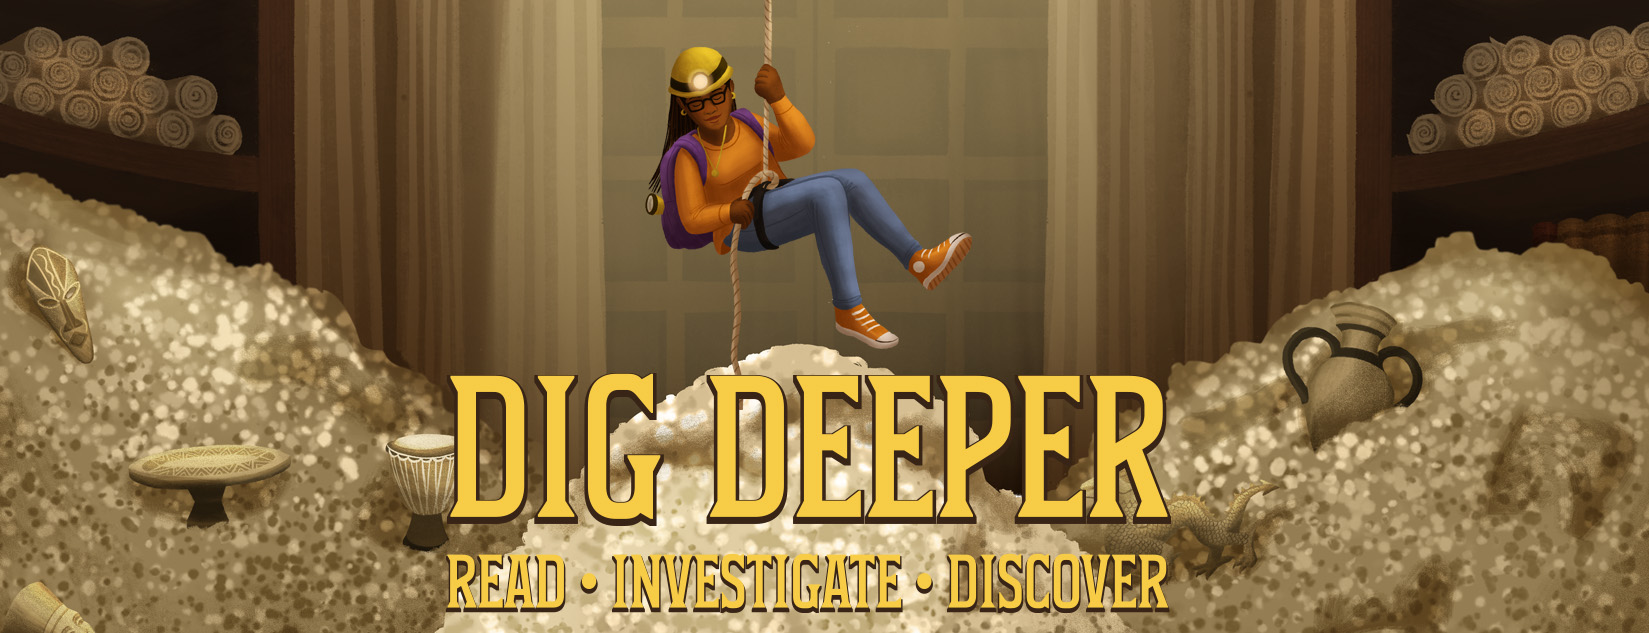 2020 iread fb cover image3 dcee51d2